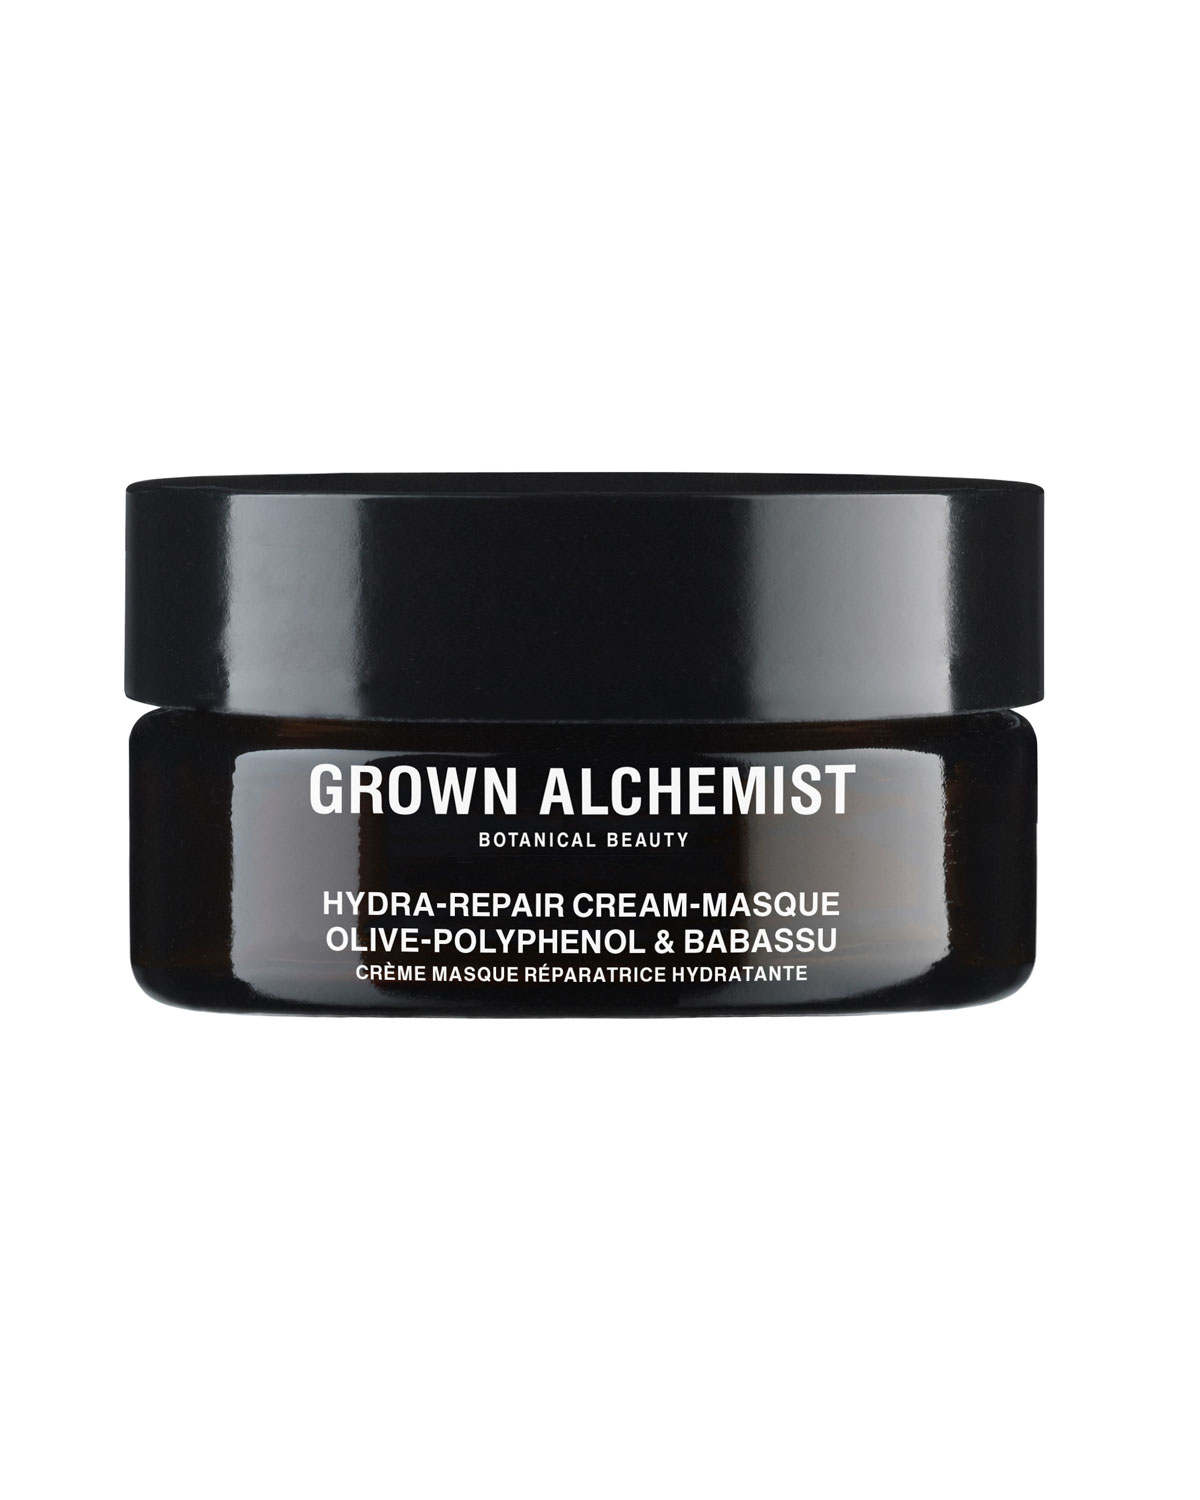 GROWN ALCHEMIST Hydra-Repair Cream-Masque: Olive-Polyphenol & Capuacu Butter, 2.0 Oz./ 60 Ml